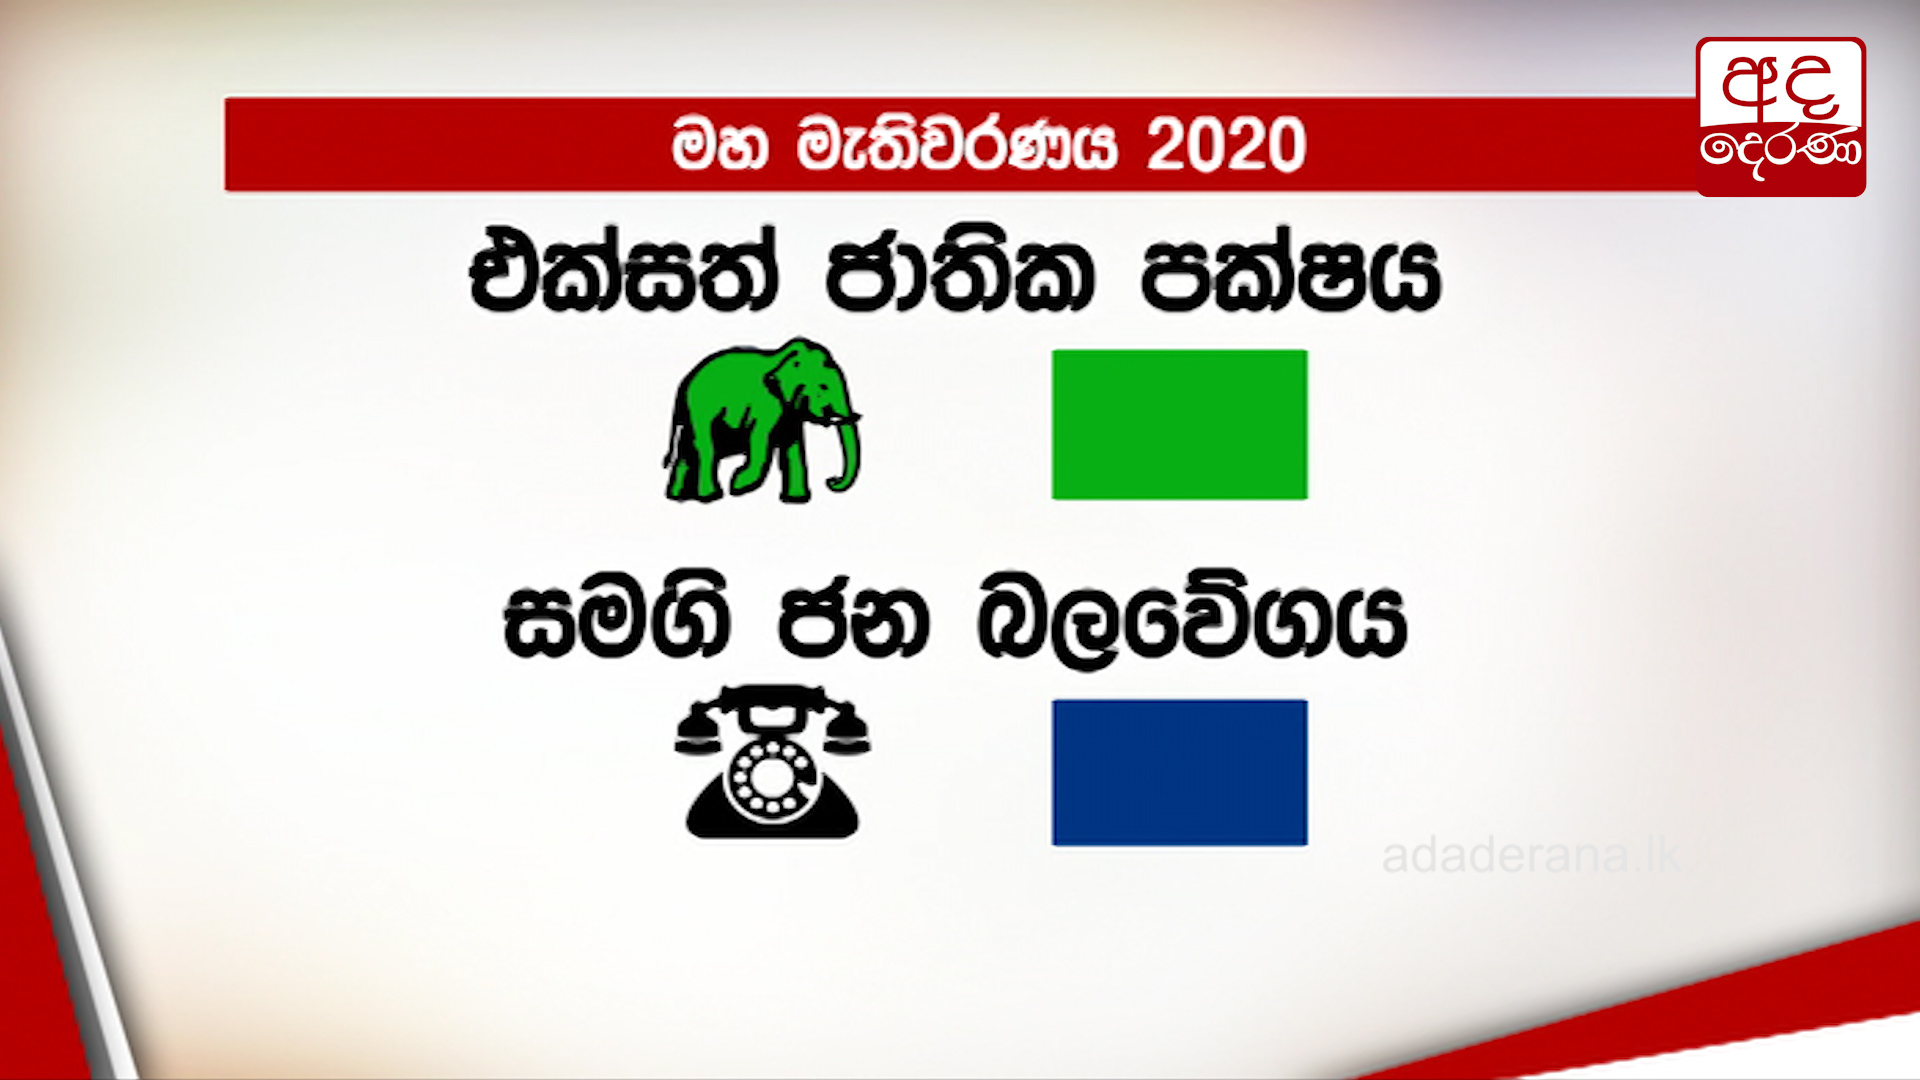 UNP lodges complaint against SJB over election campaign color